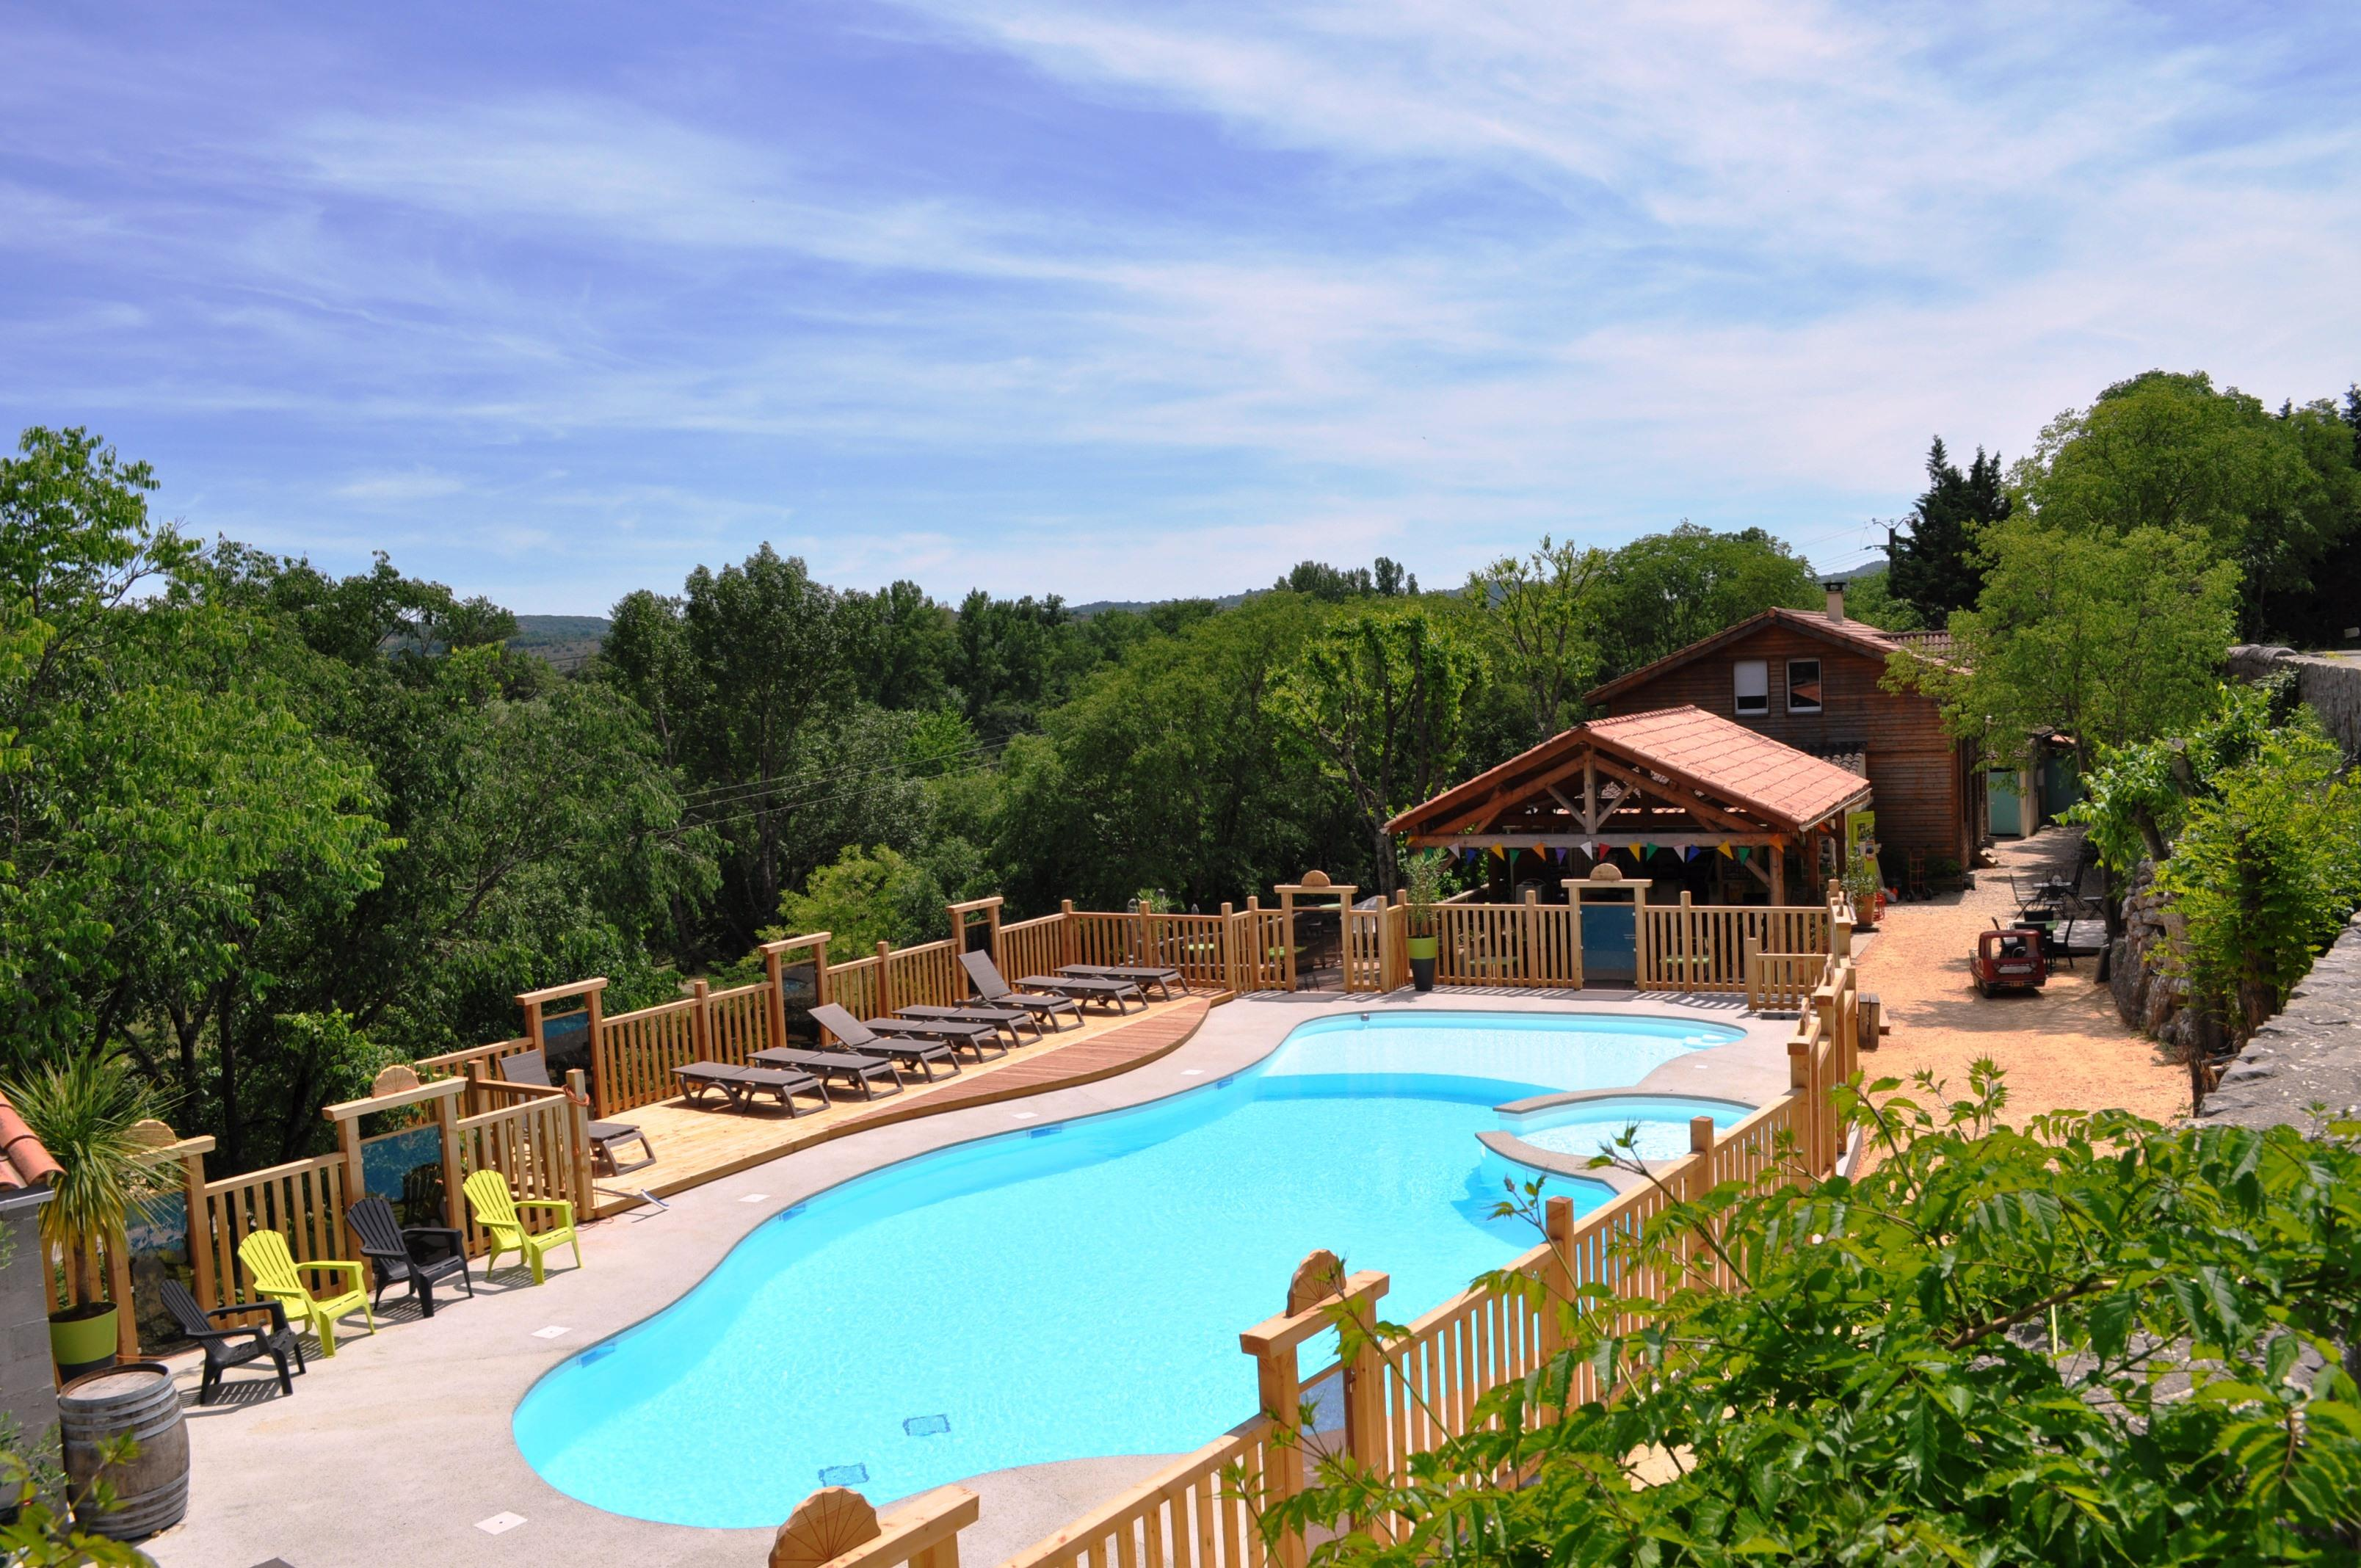 Establishment Camping De L'arche - Lanas